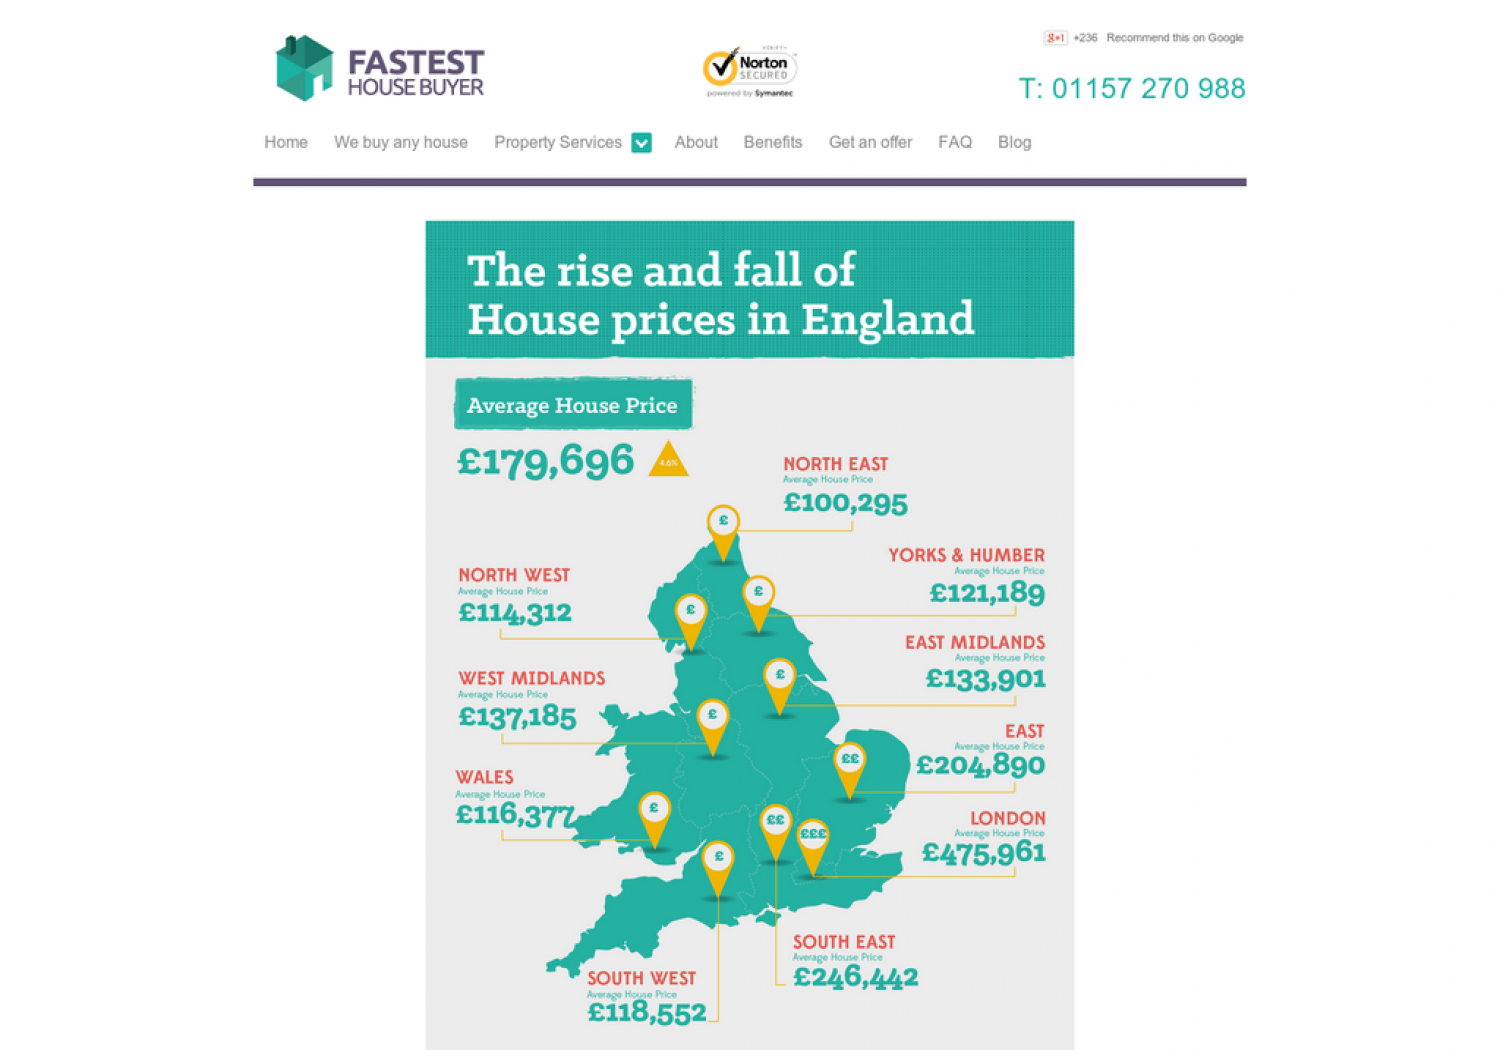 The Rise And Fall of House Prices in England Infographic